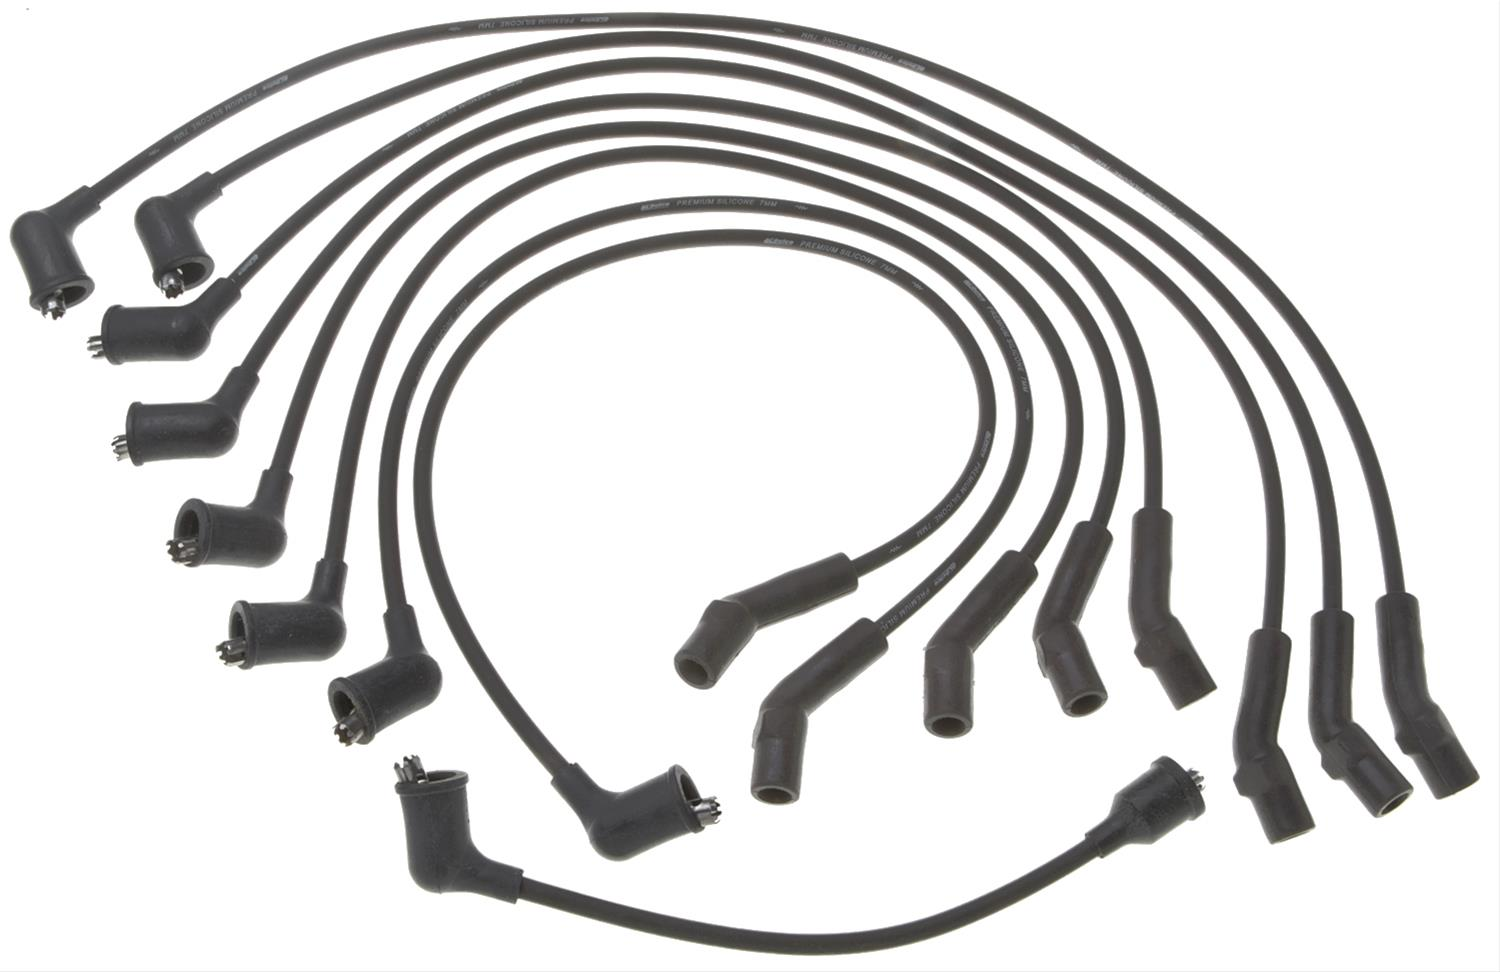 Acdelco Spark Plug Wire Sets